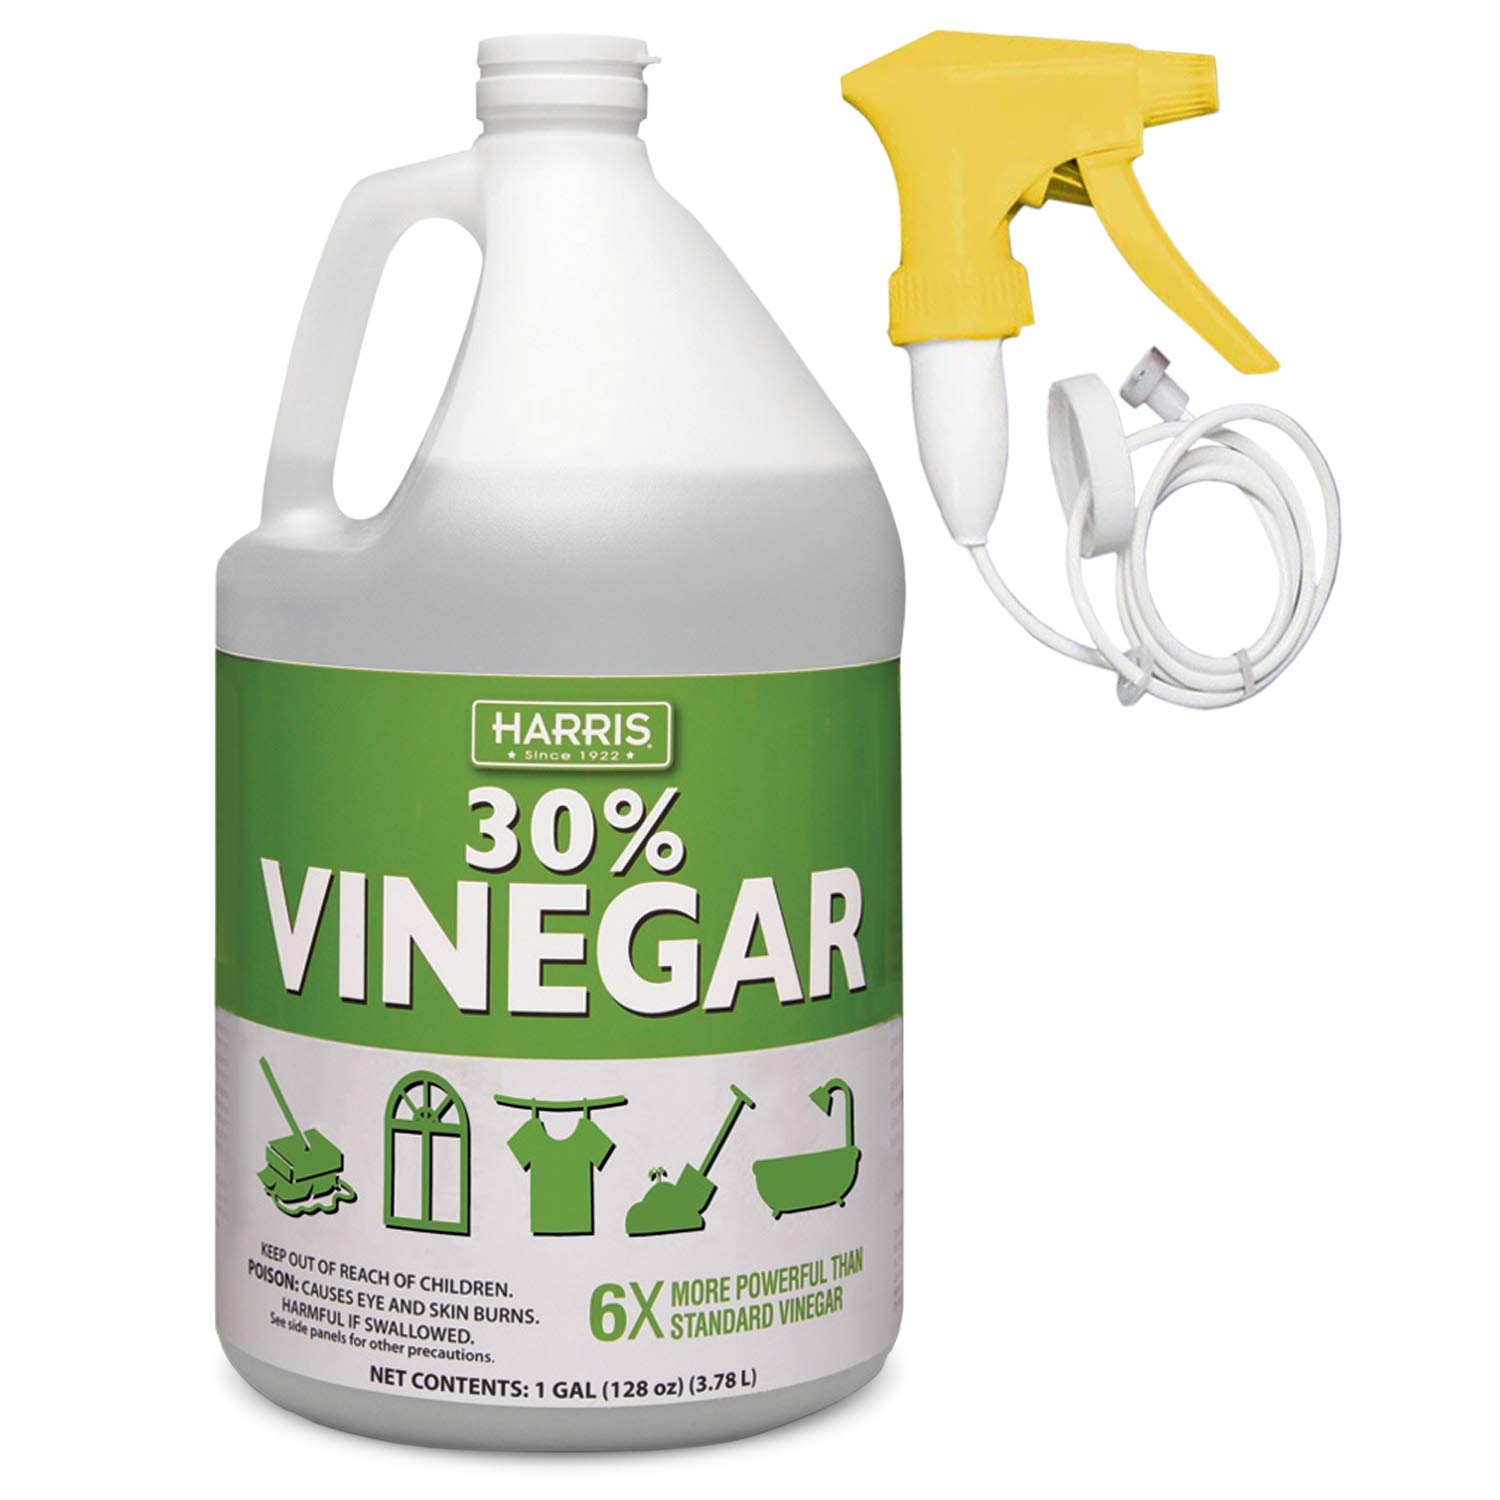 Harris 30% Vinegar, Extra Strength with Trigger Sprayer Included, Gallon by Harris (Image #1)